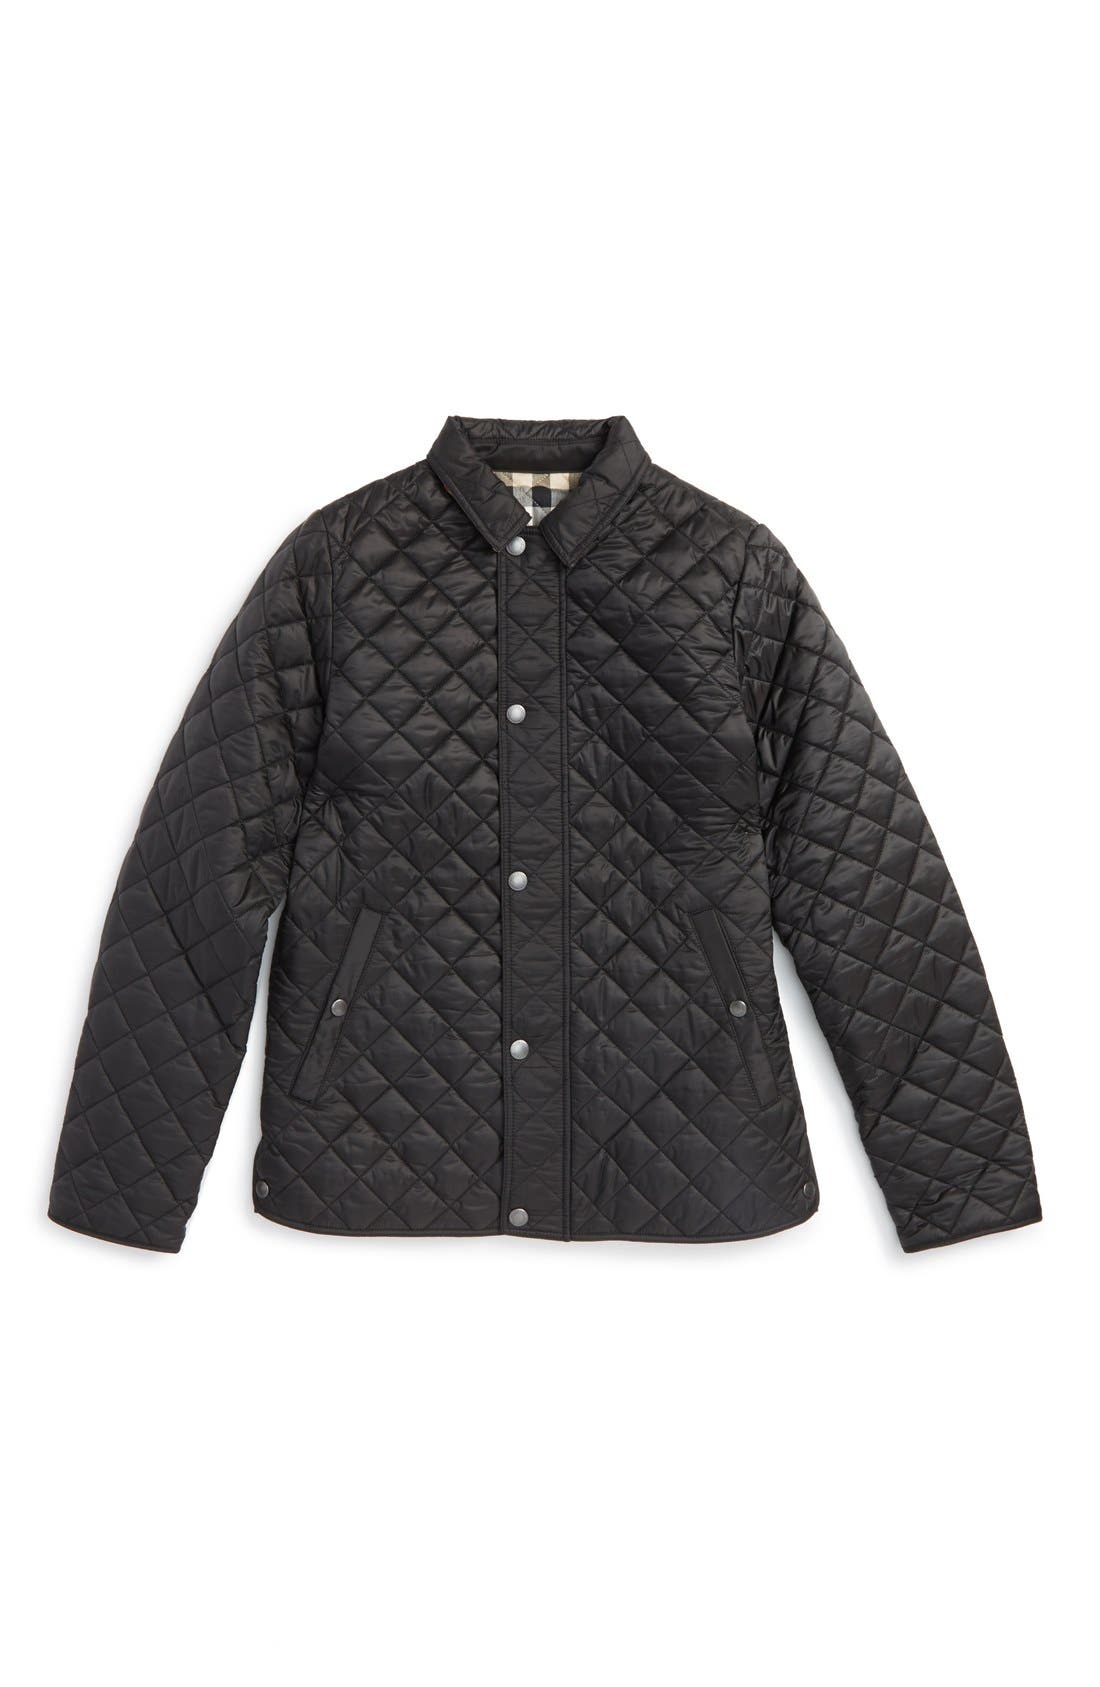 BURBERRY Quilted Jacket, Main, color, 001